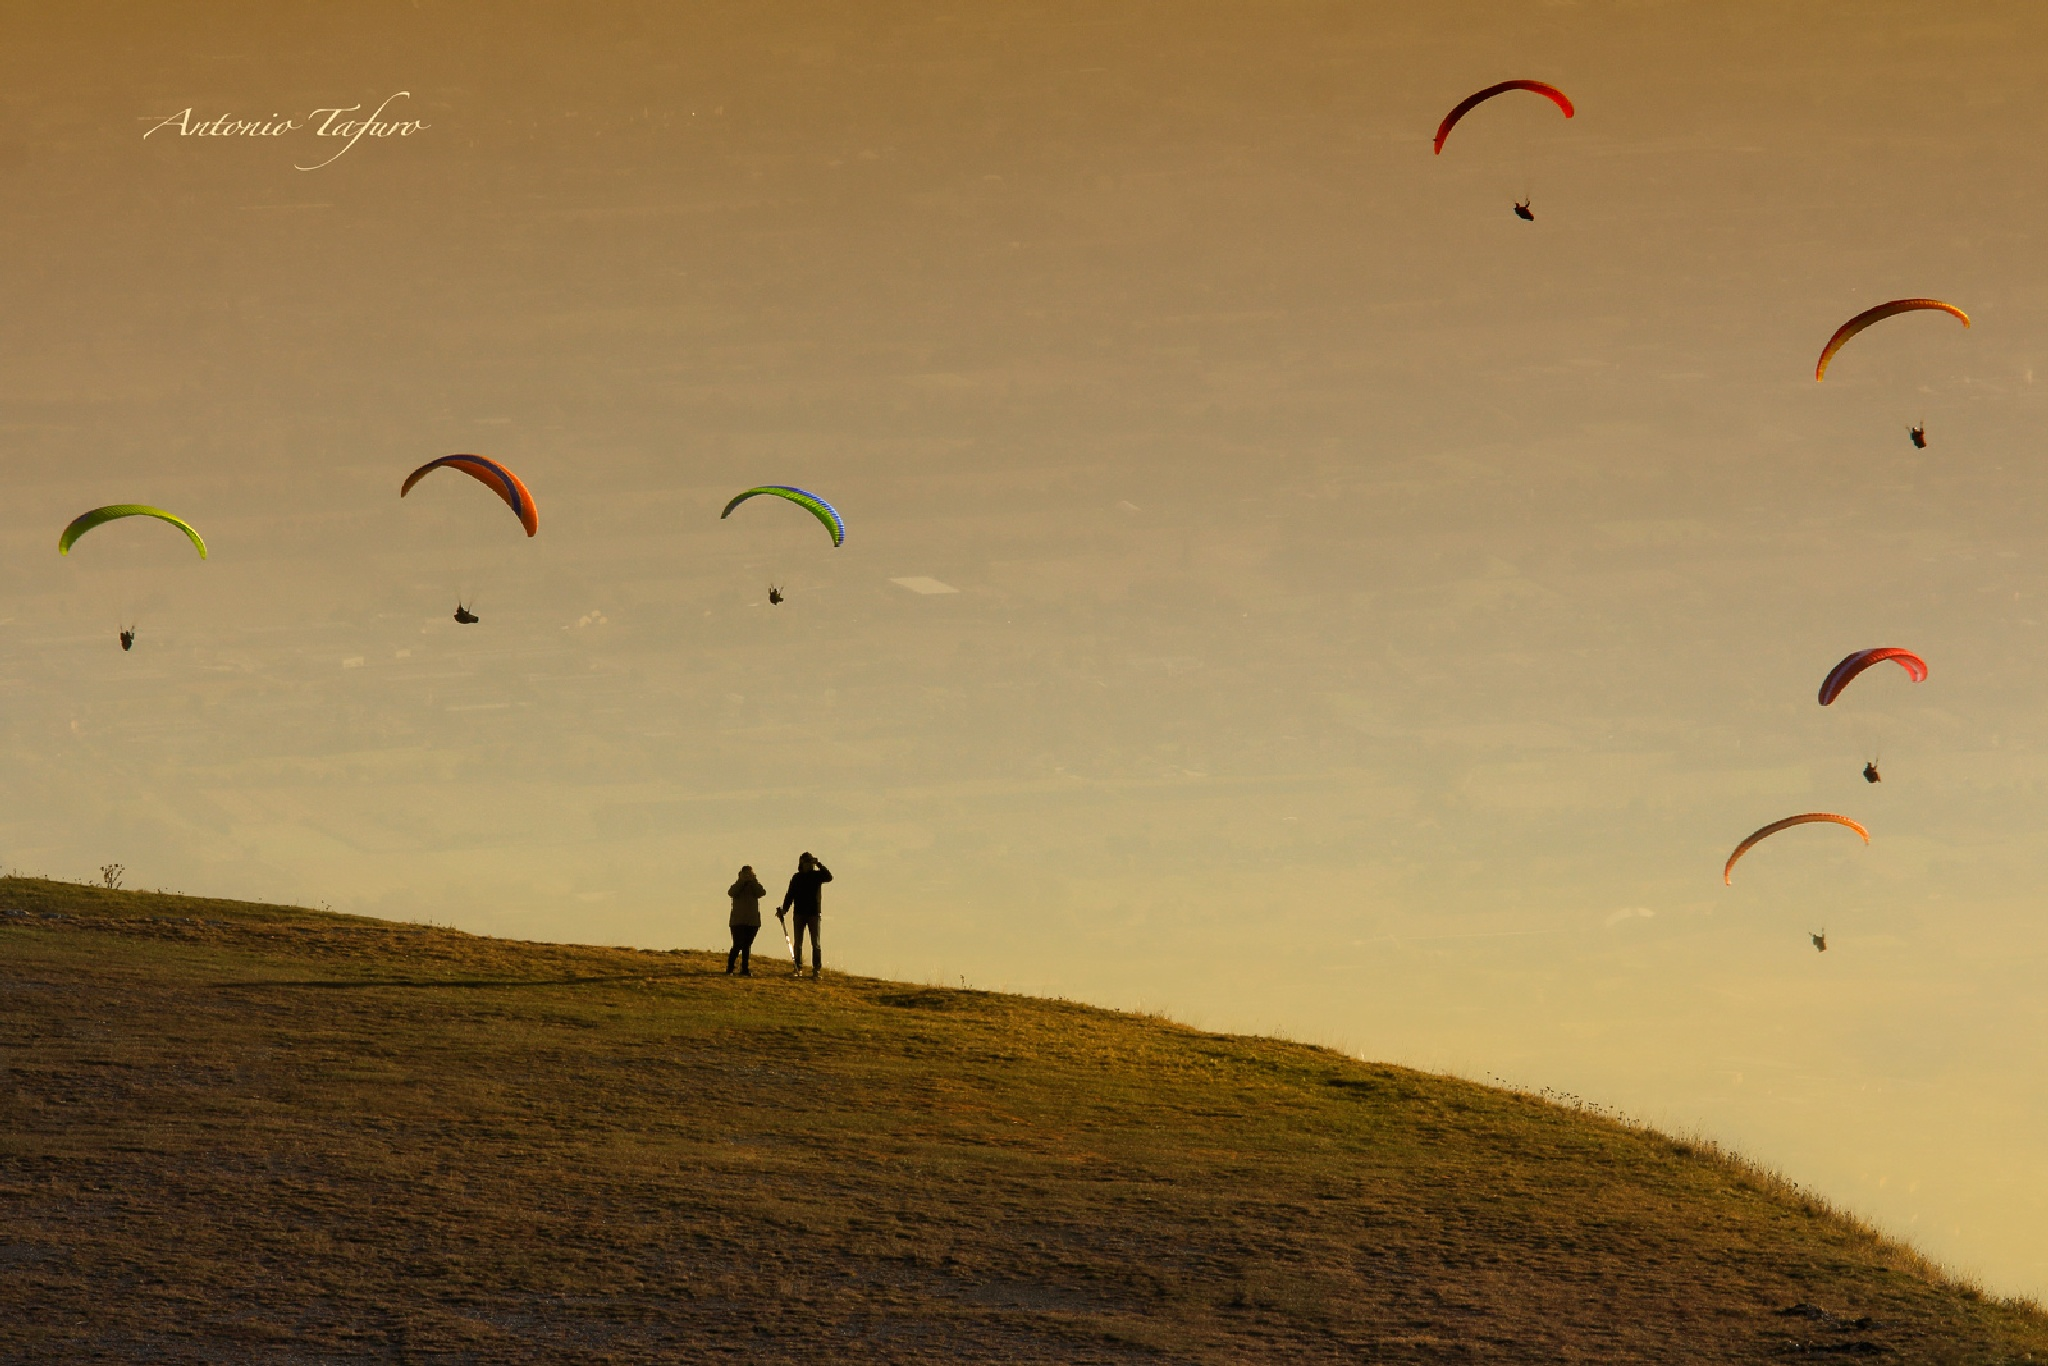 Paragliders by Antonio Tafuro